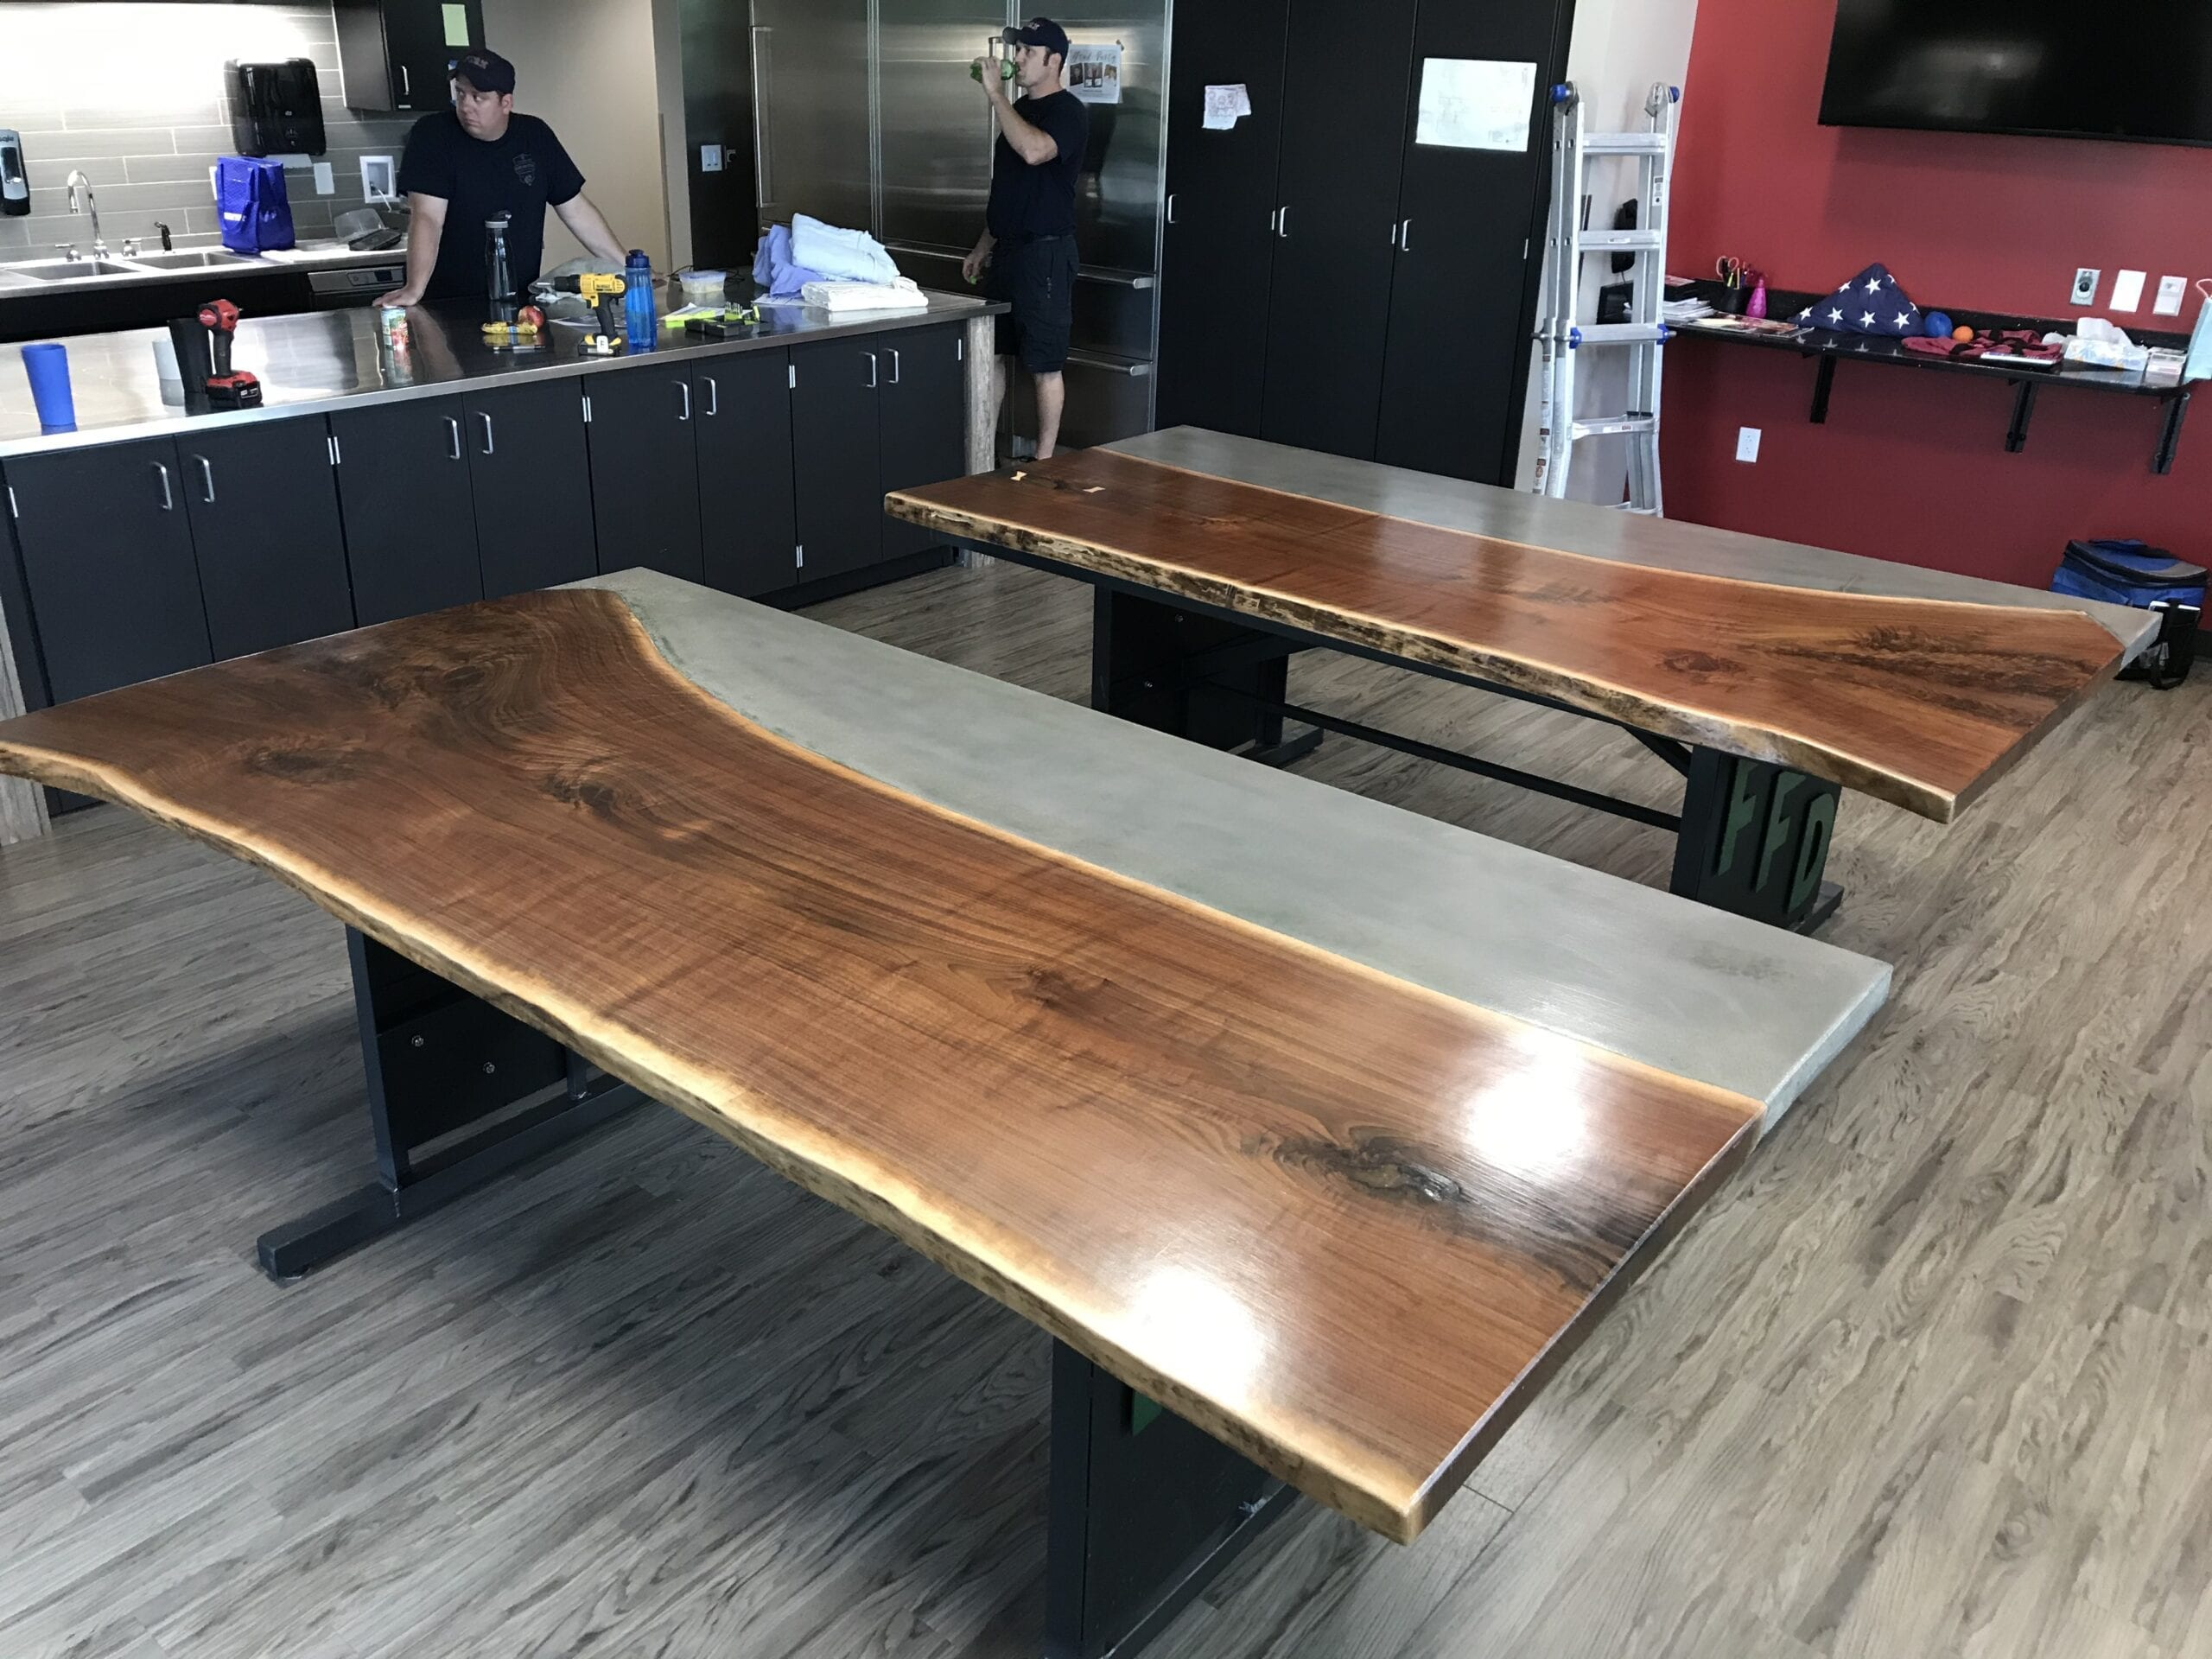 Charcoal Dye Stained Concrete and Reclaimed Wood Table